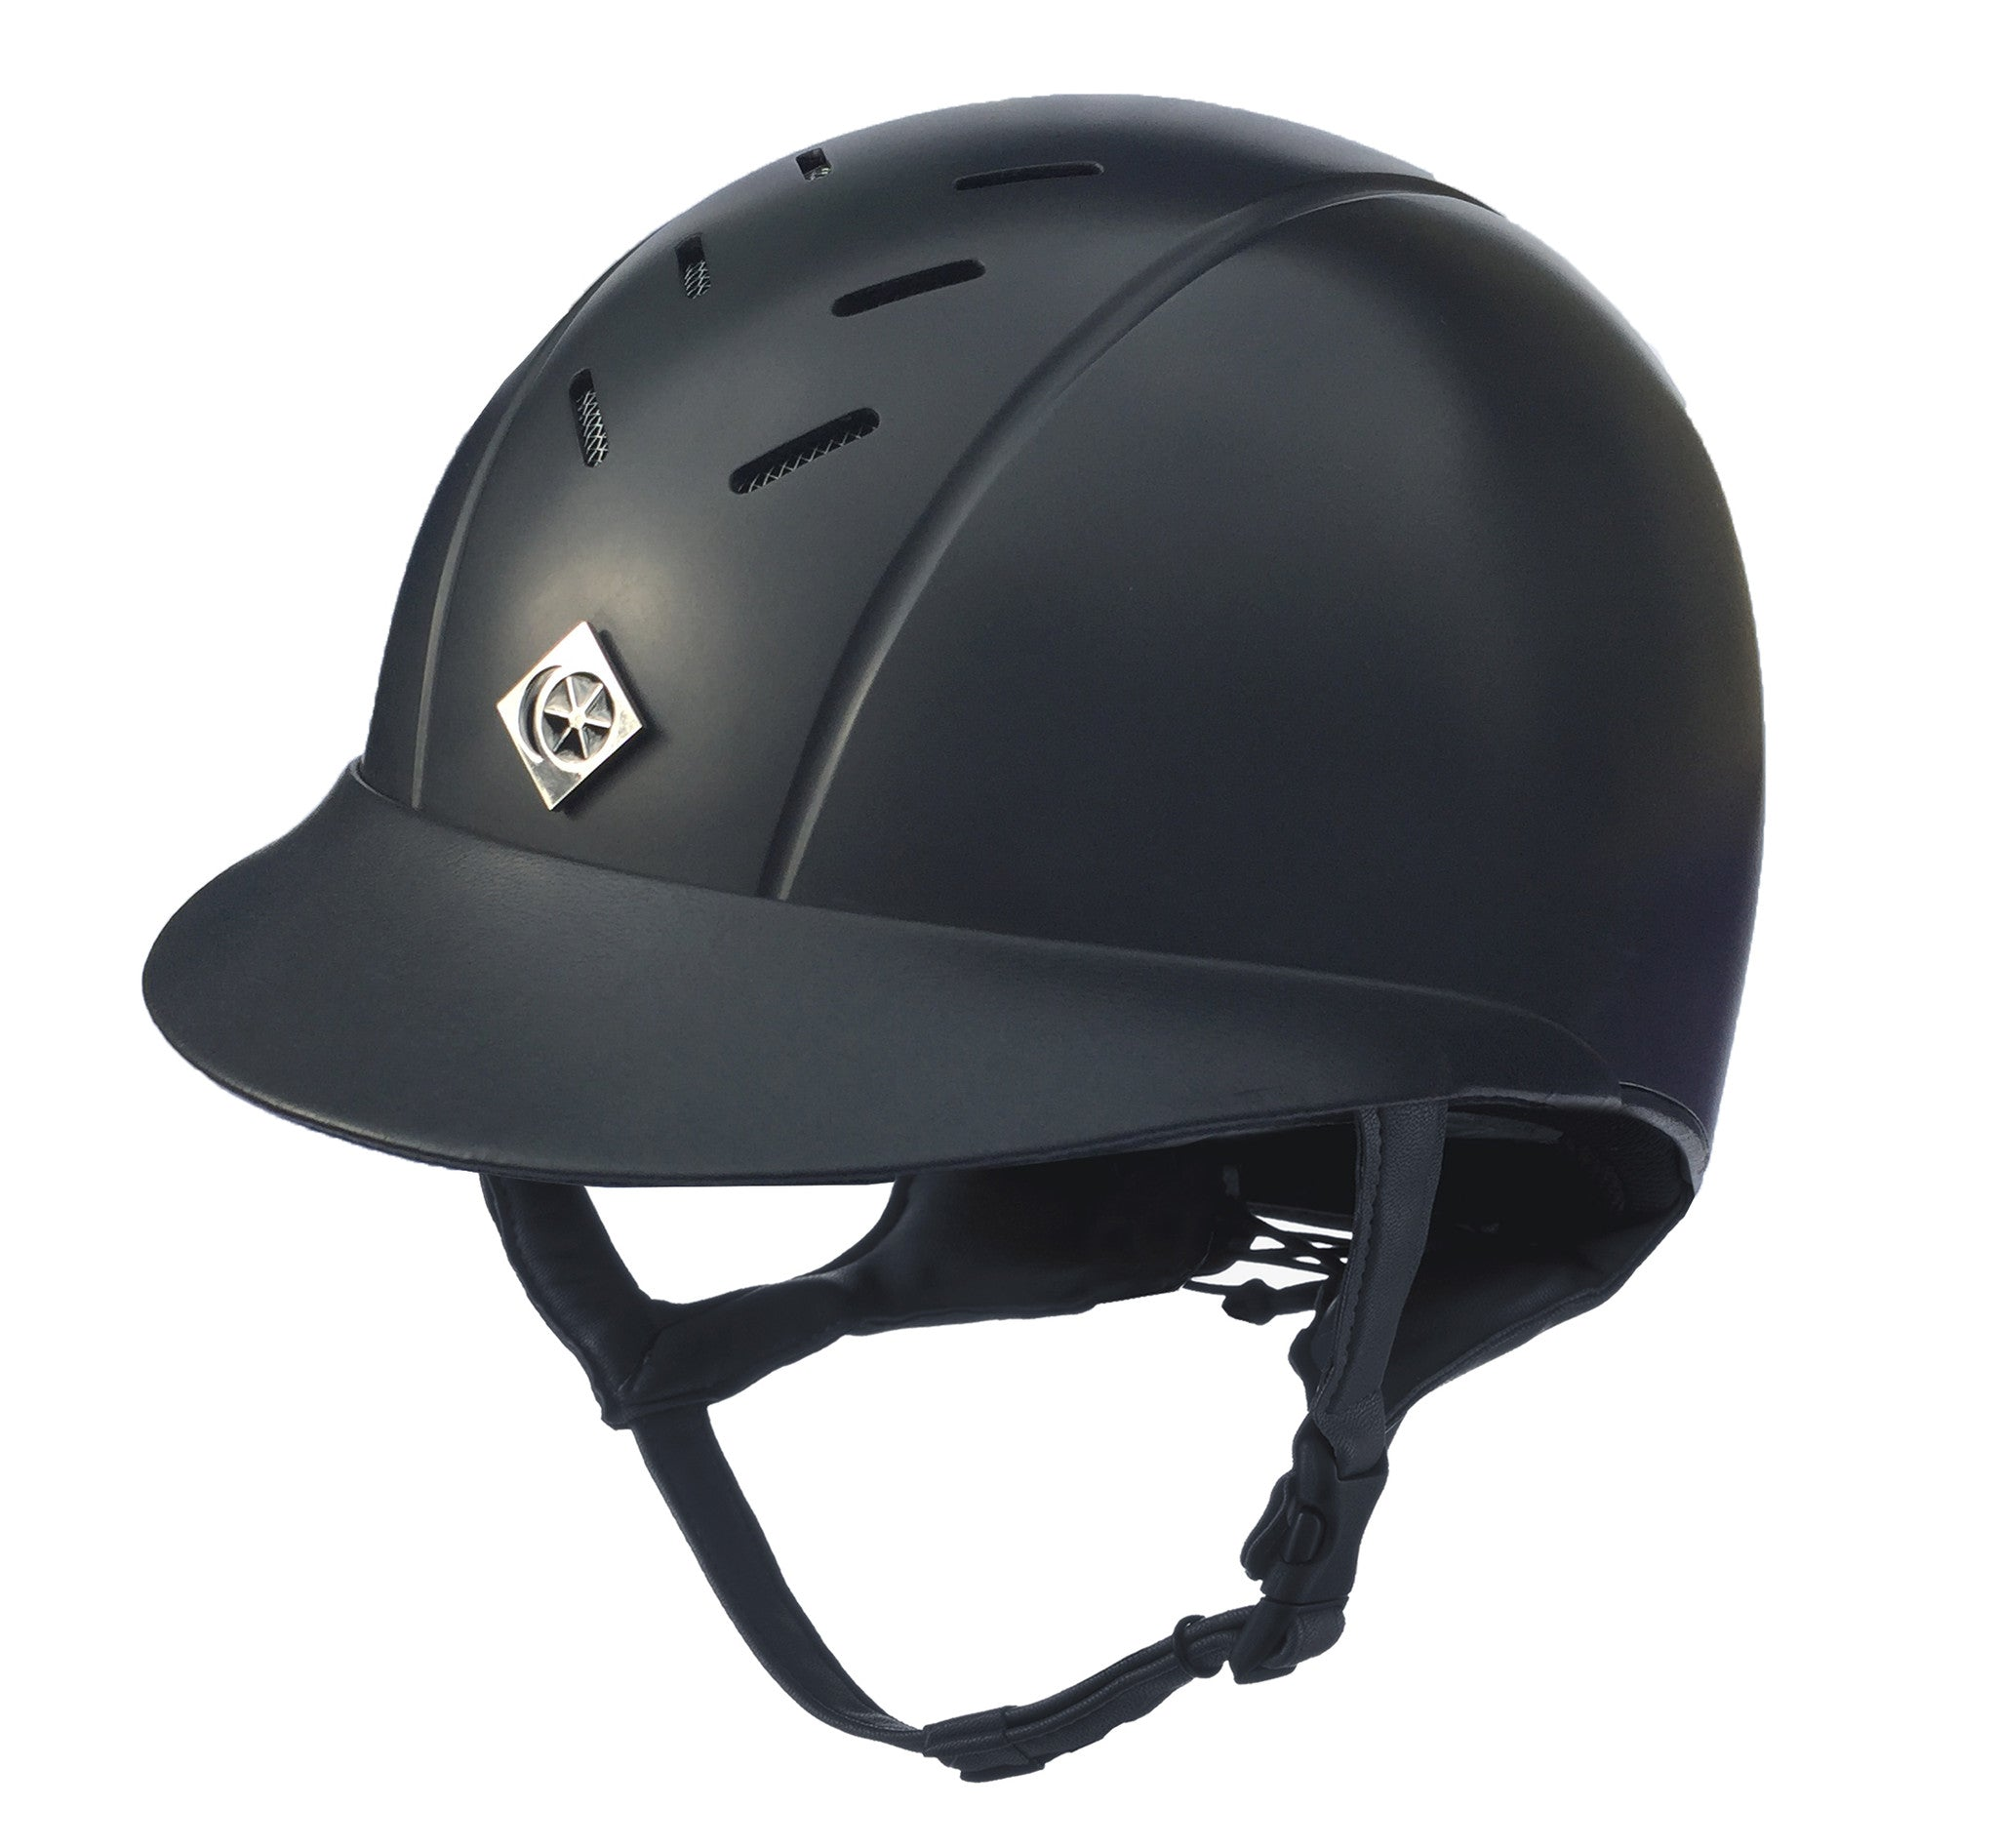 Charles Owen AyrBrush Helmet - North Shore Saddlery